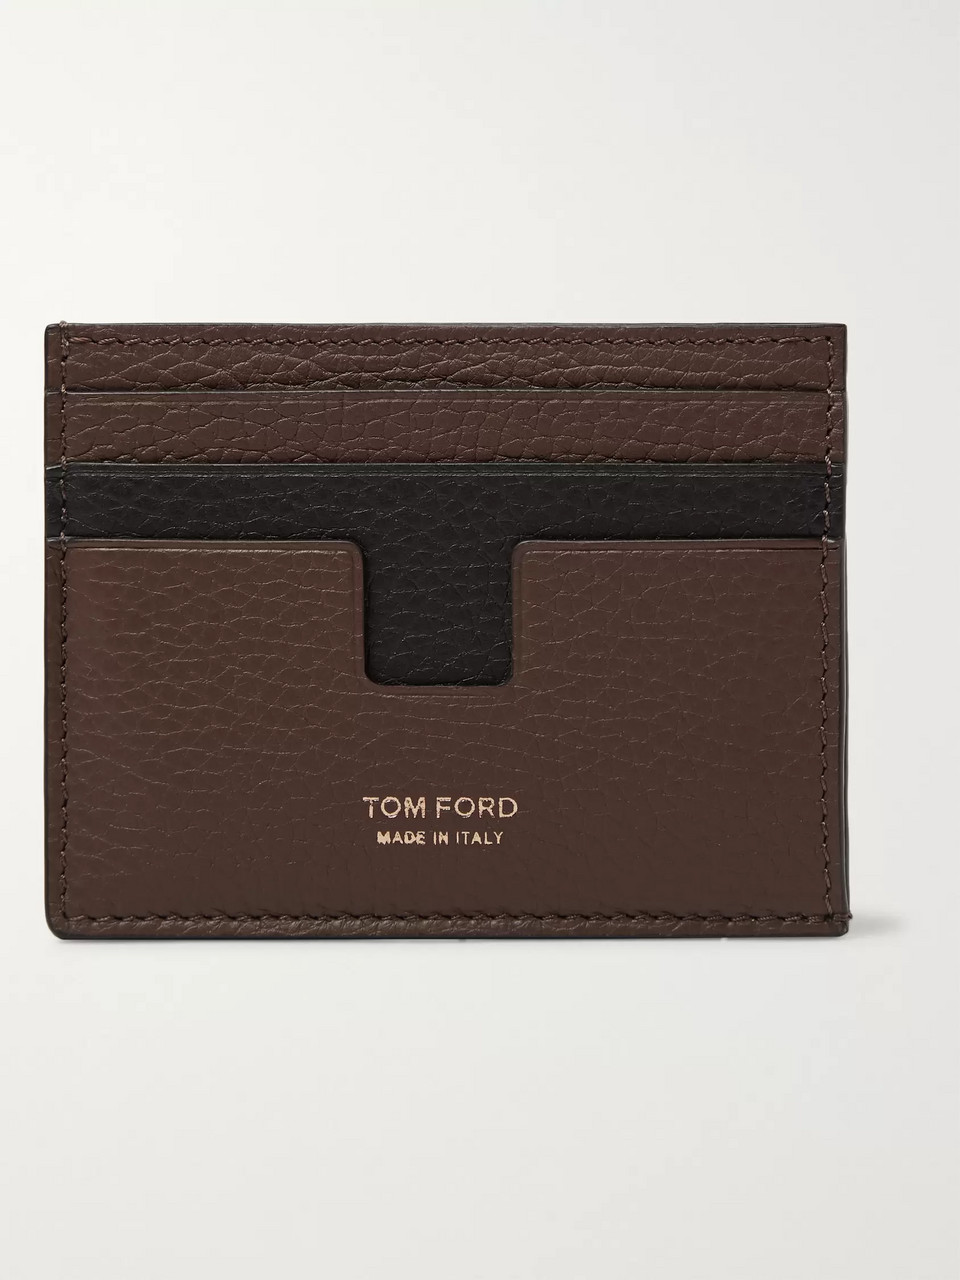 TOM FORD Two-Tone Full-Grain Leather Cardholder